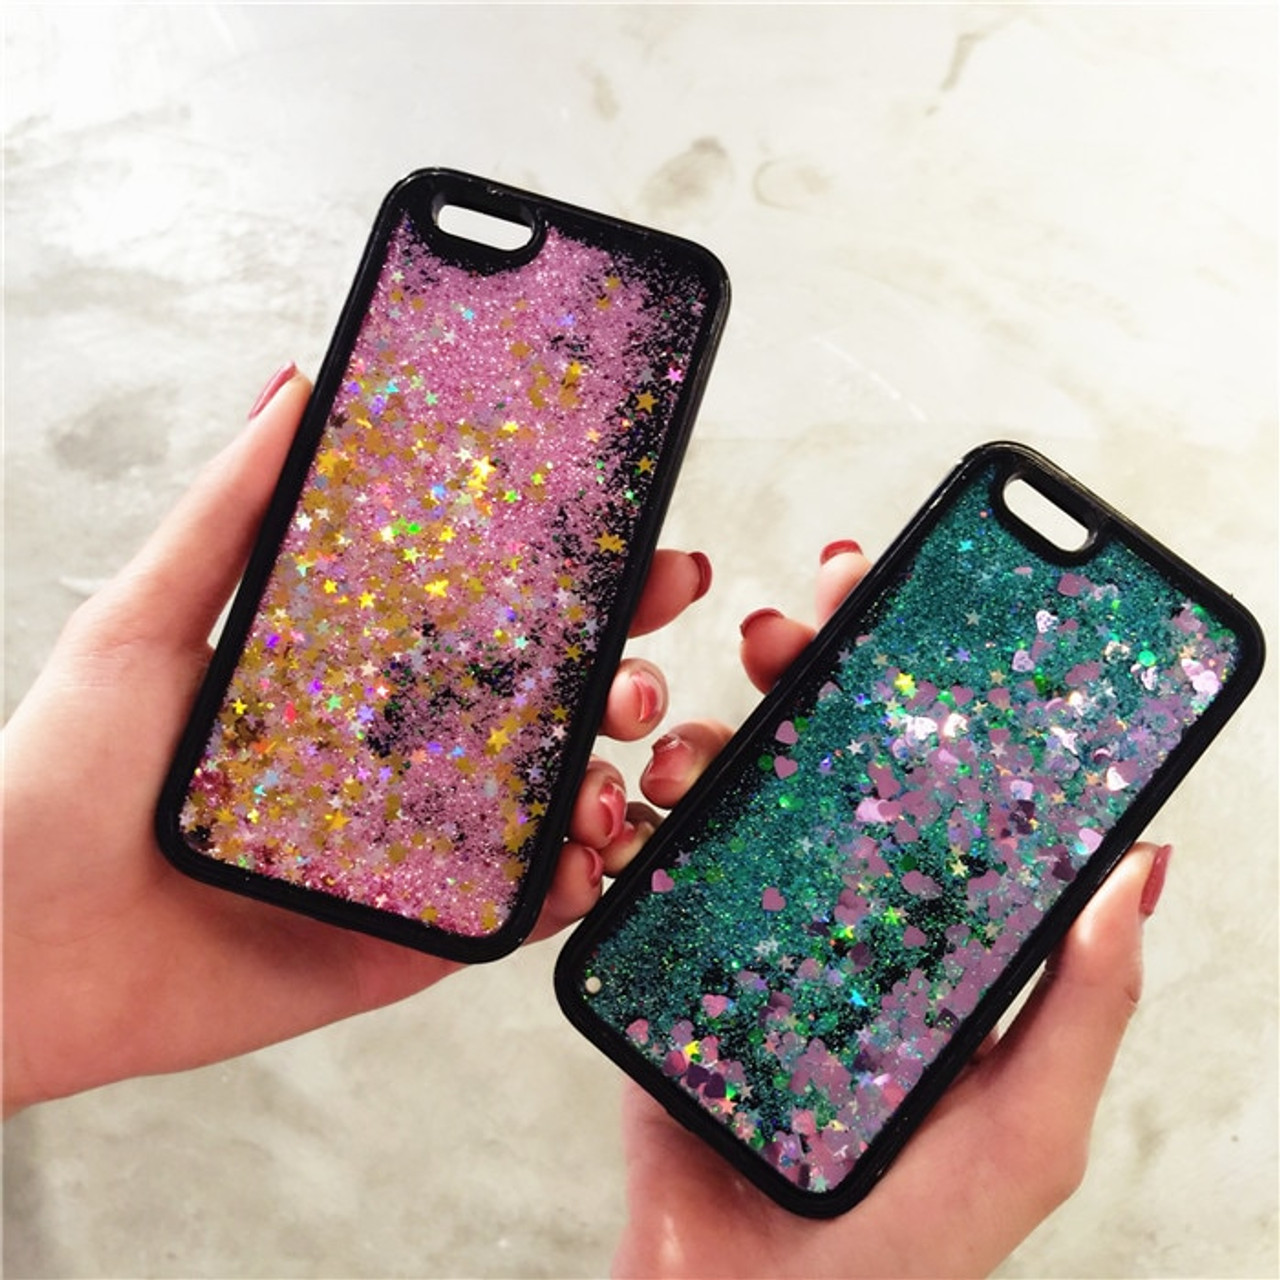 Bling Liquid Quicksand Phone Case For iPhone X XS 7 8 Plus Black Shiny  Sequin PC Glitter Case Cover For iPhone 5 5S SE 6 6S Plus - OnshopDeals.Com 12dcd2a820ce